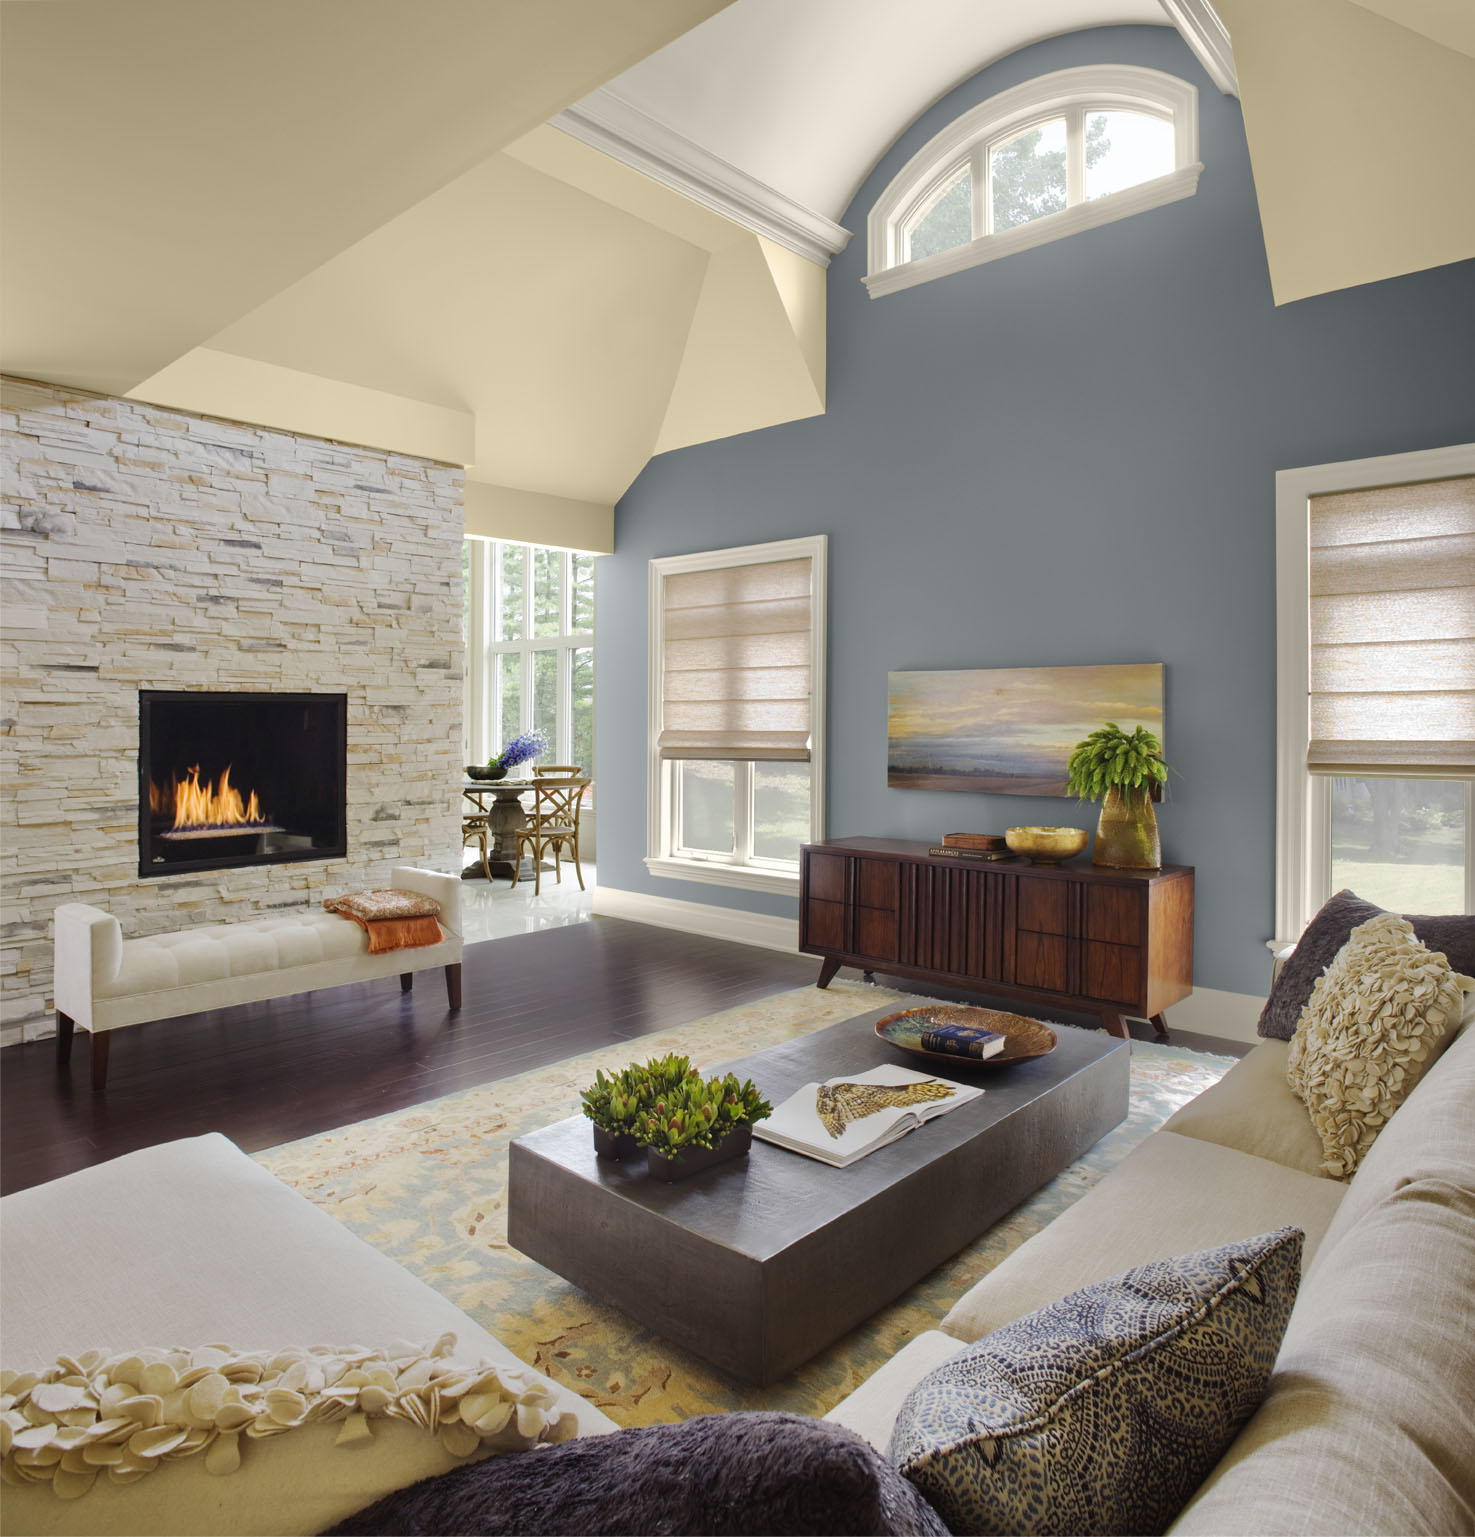 Paint Colors For Living Room With Cathedral Ceilings Yes Go Part 48